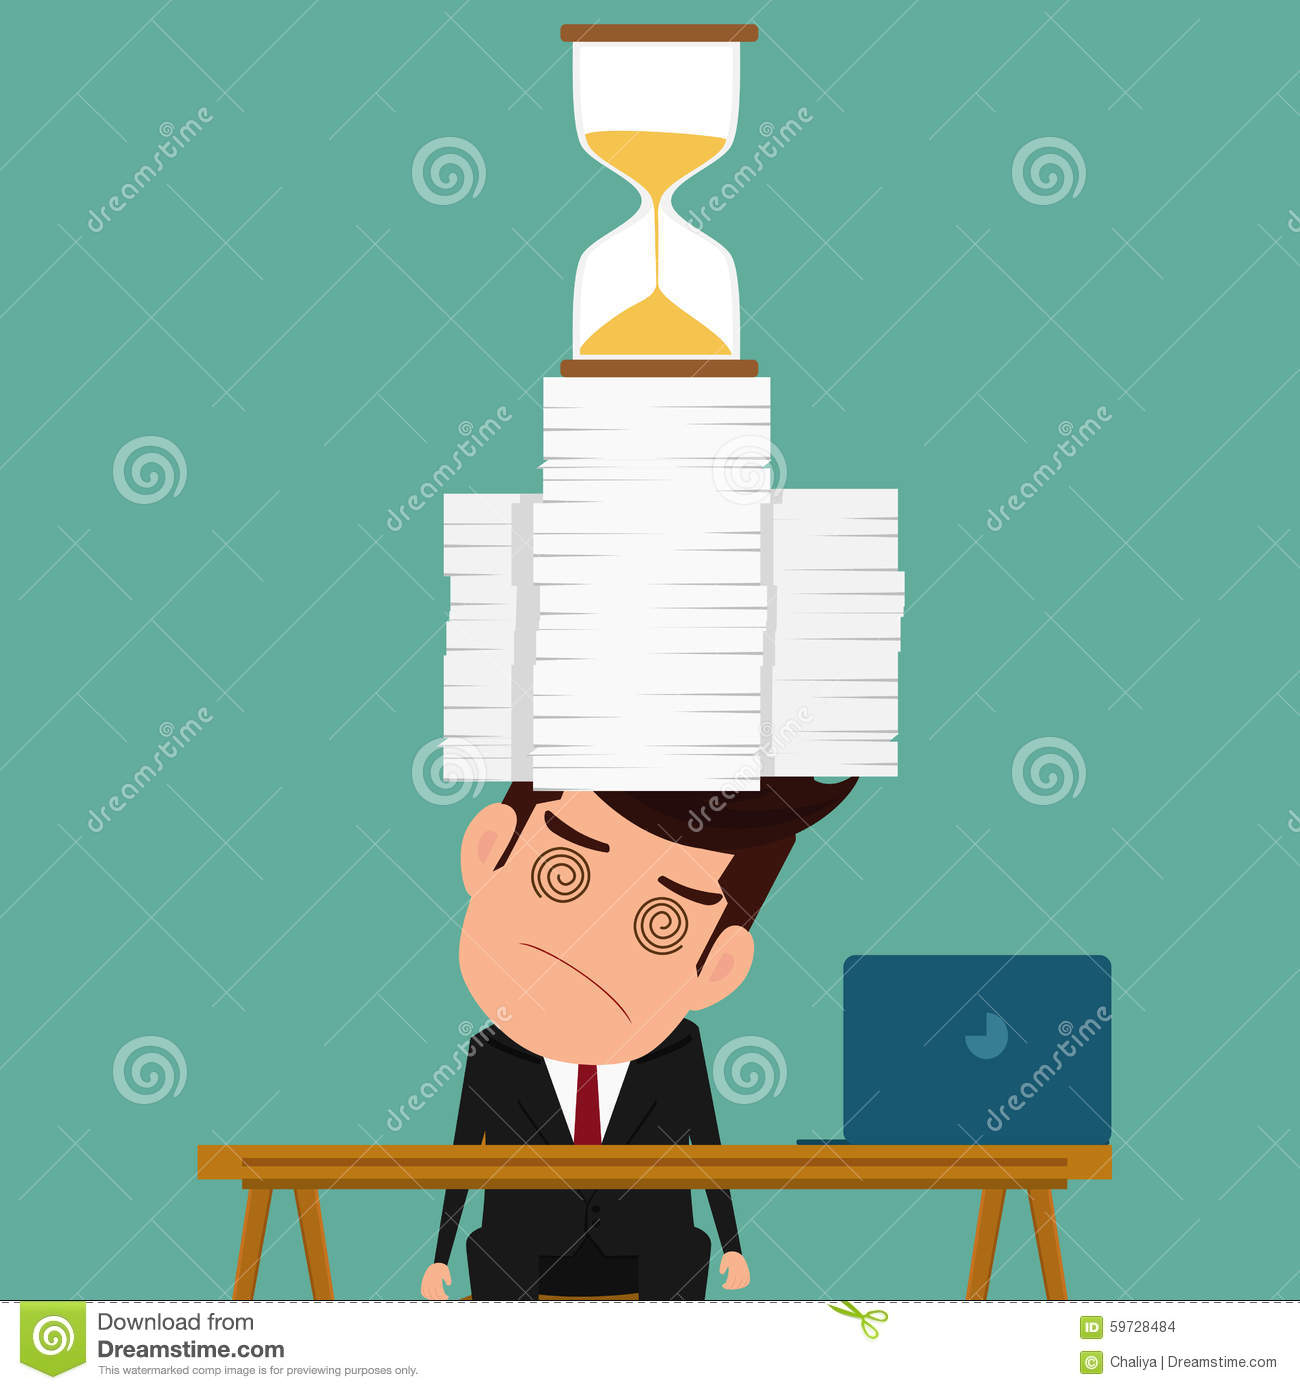 download business man work hard and overload under pressure in urgent deadline stock vector